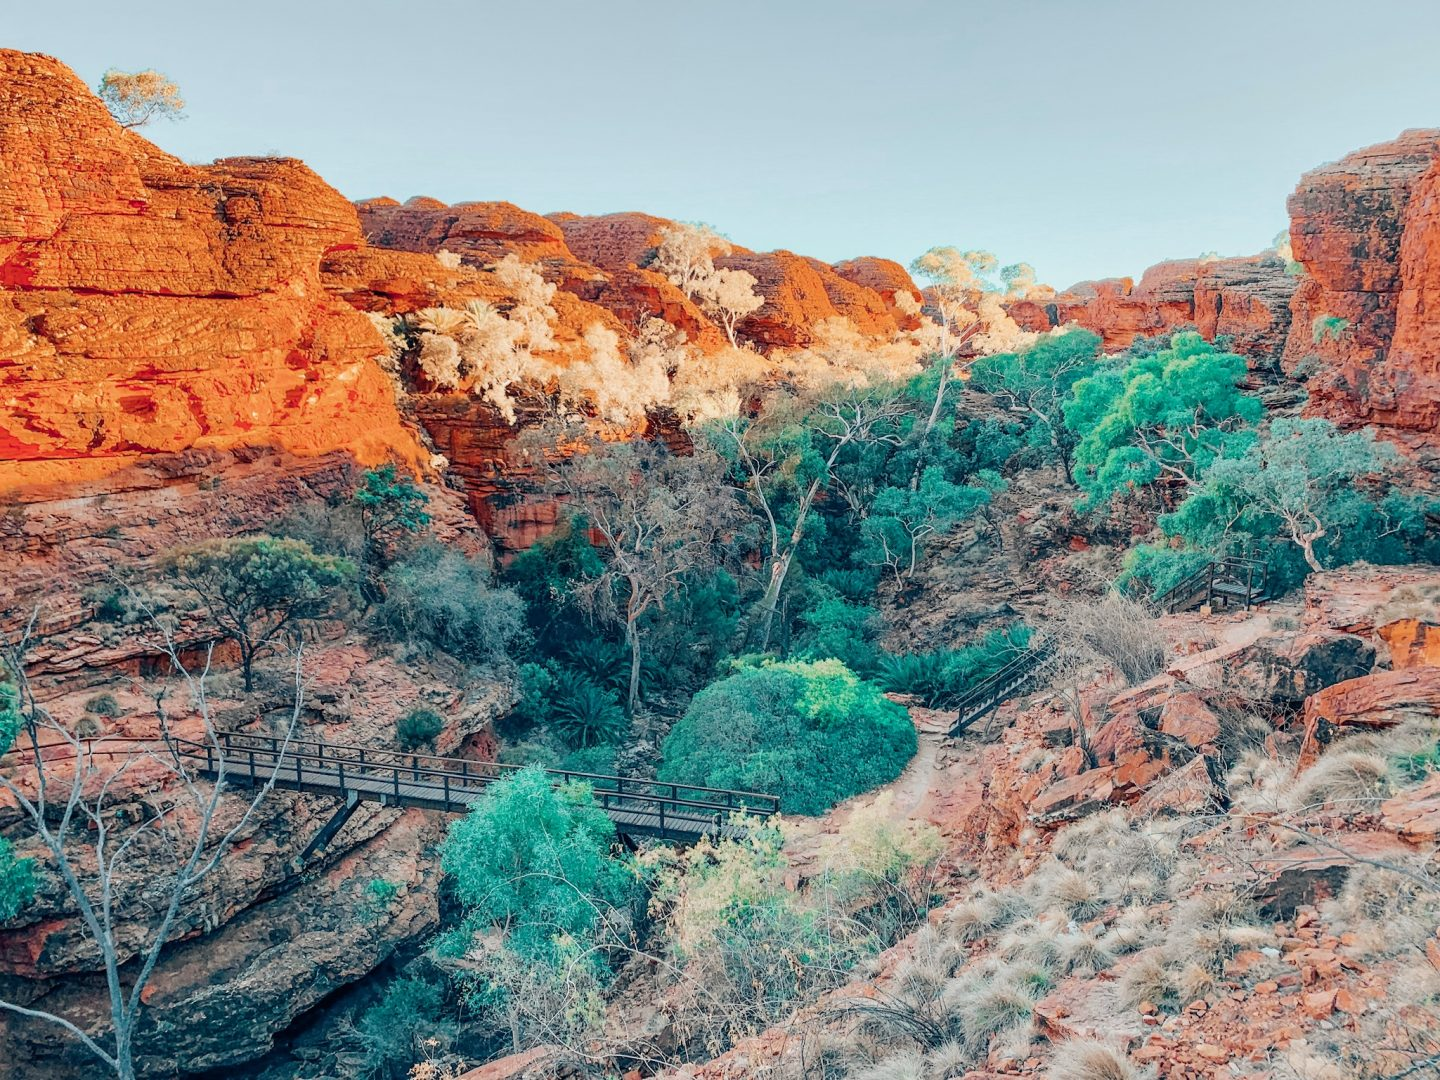 Hiking Kings Canyon in the Outback, Australia!